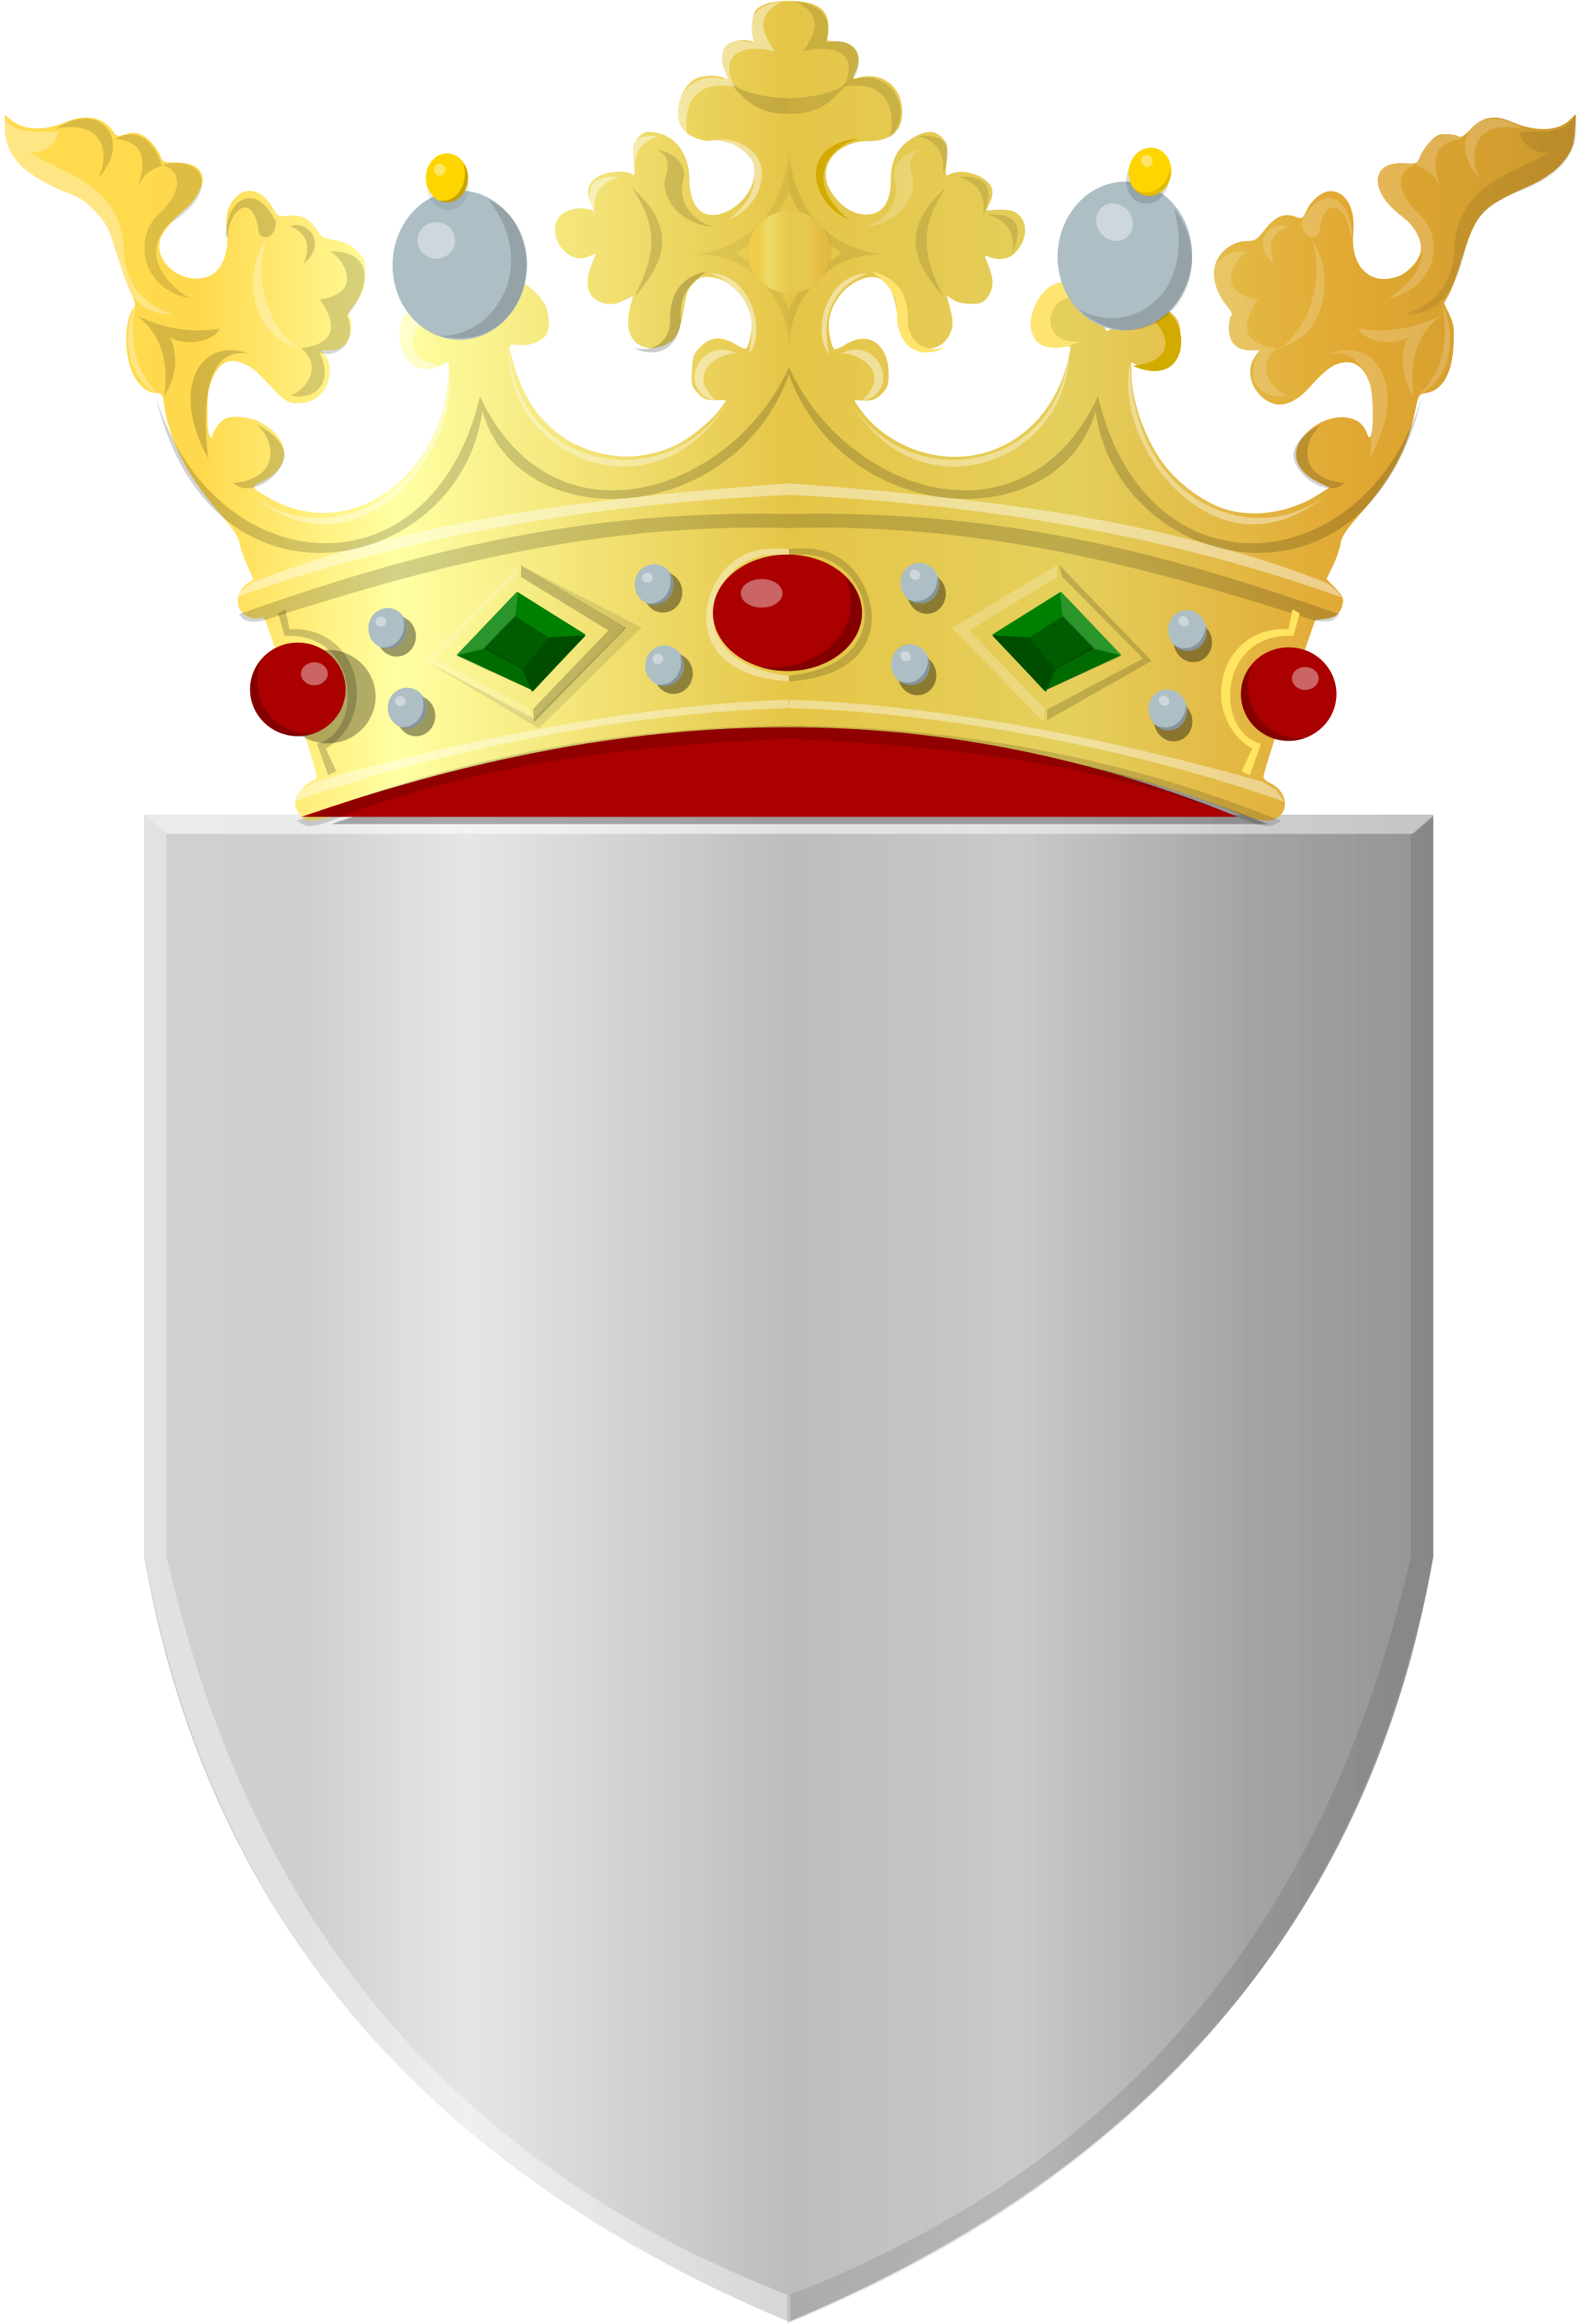 File:Silver shield with golden crown.svg - Wikimedia Commons clipart transparent download